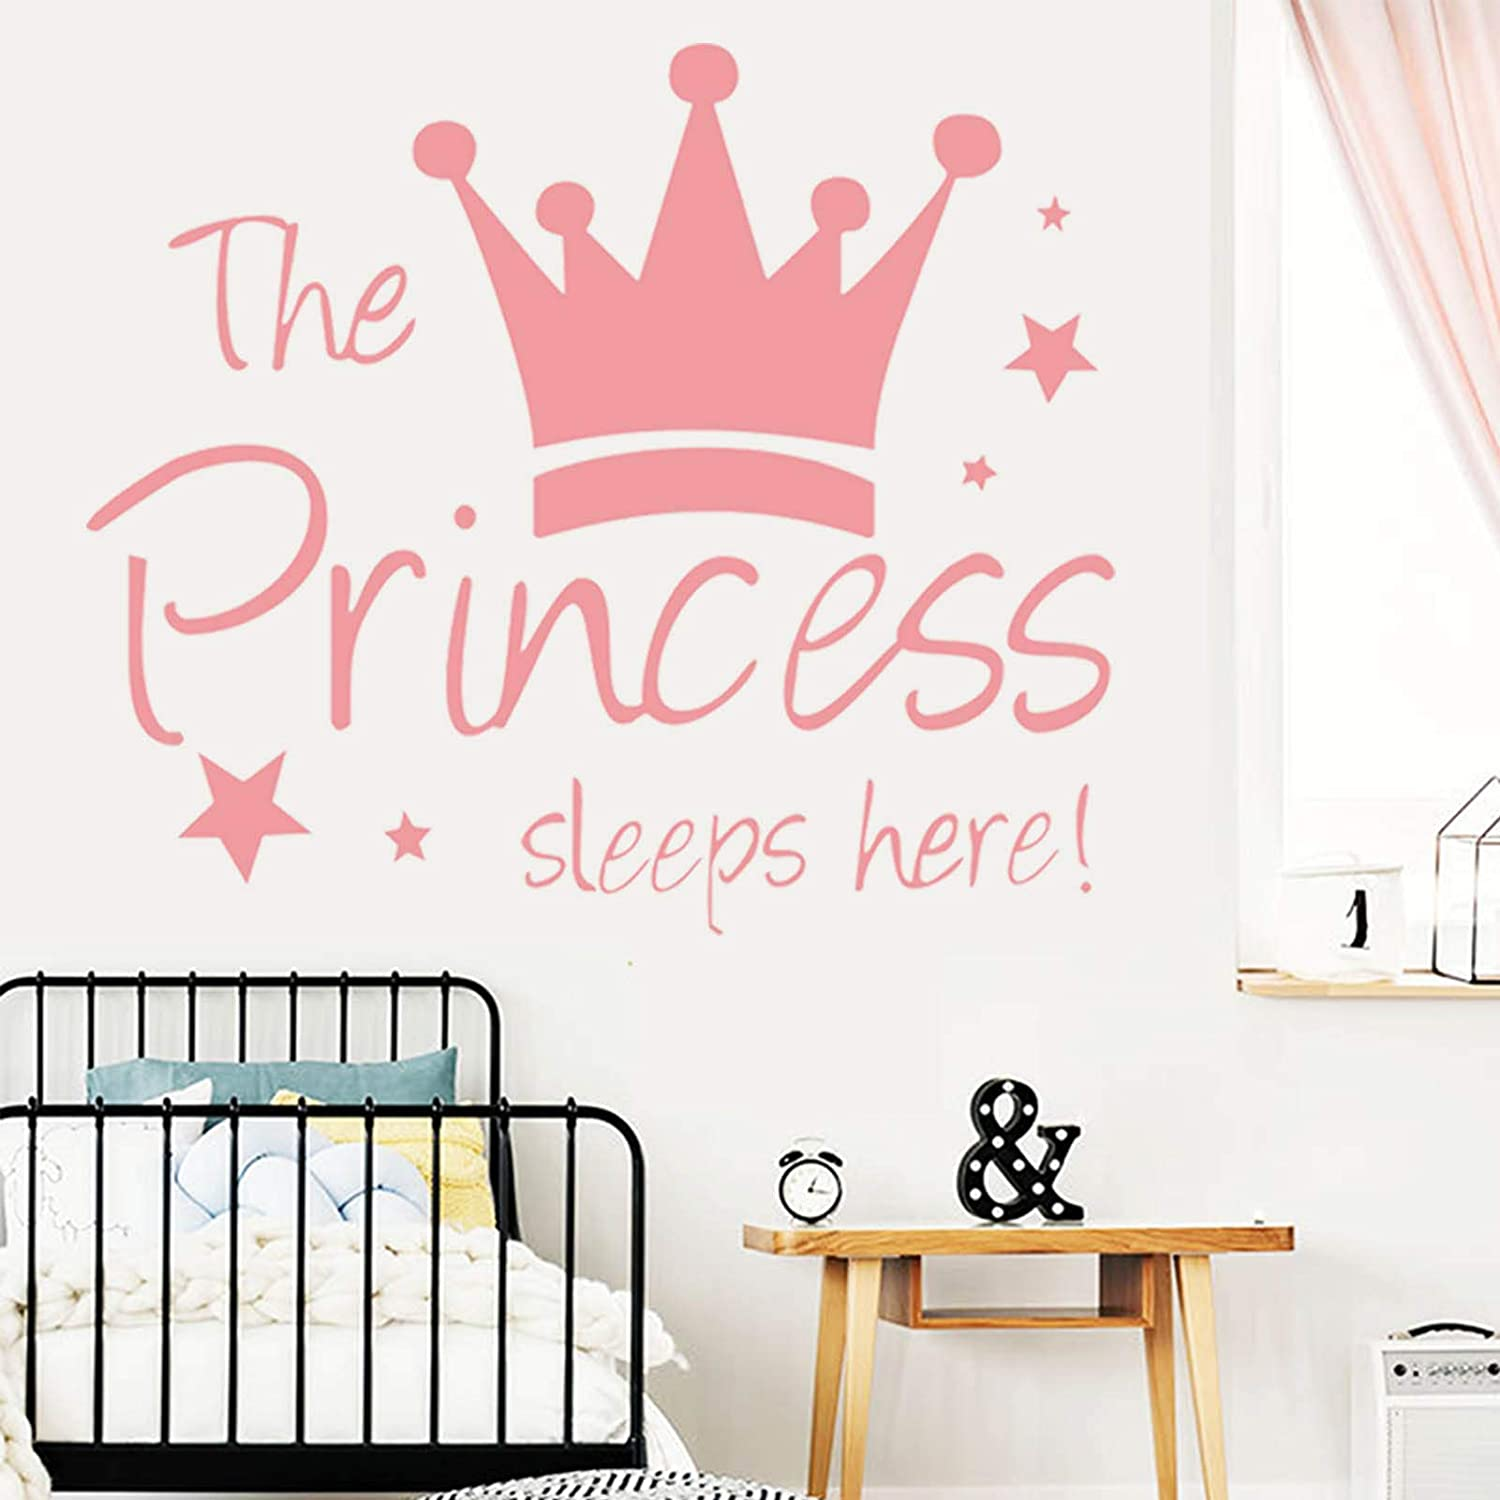 Wall Decals for Girls Room-The Princess Sleeps Here-Pink Stars Crown Wall Sticker Decor for Kids Bedroom Nursery Christmas Birthday Party Decoration Removable